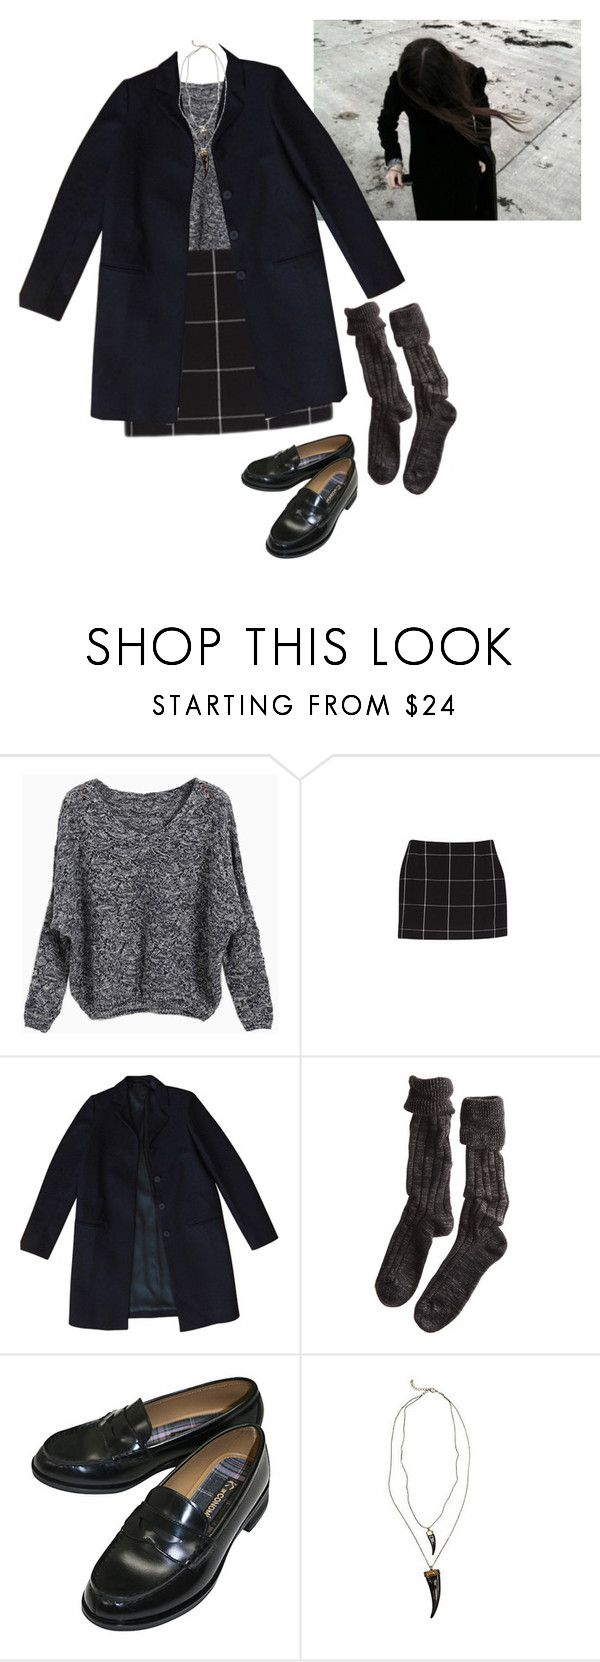 """-i'll try anything once-"" by x-utopia-x ❤ liked on Polyvore featuring COS, Polder, UO, outfit, skirt, loafers, socks and grid"